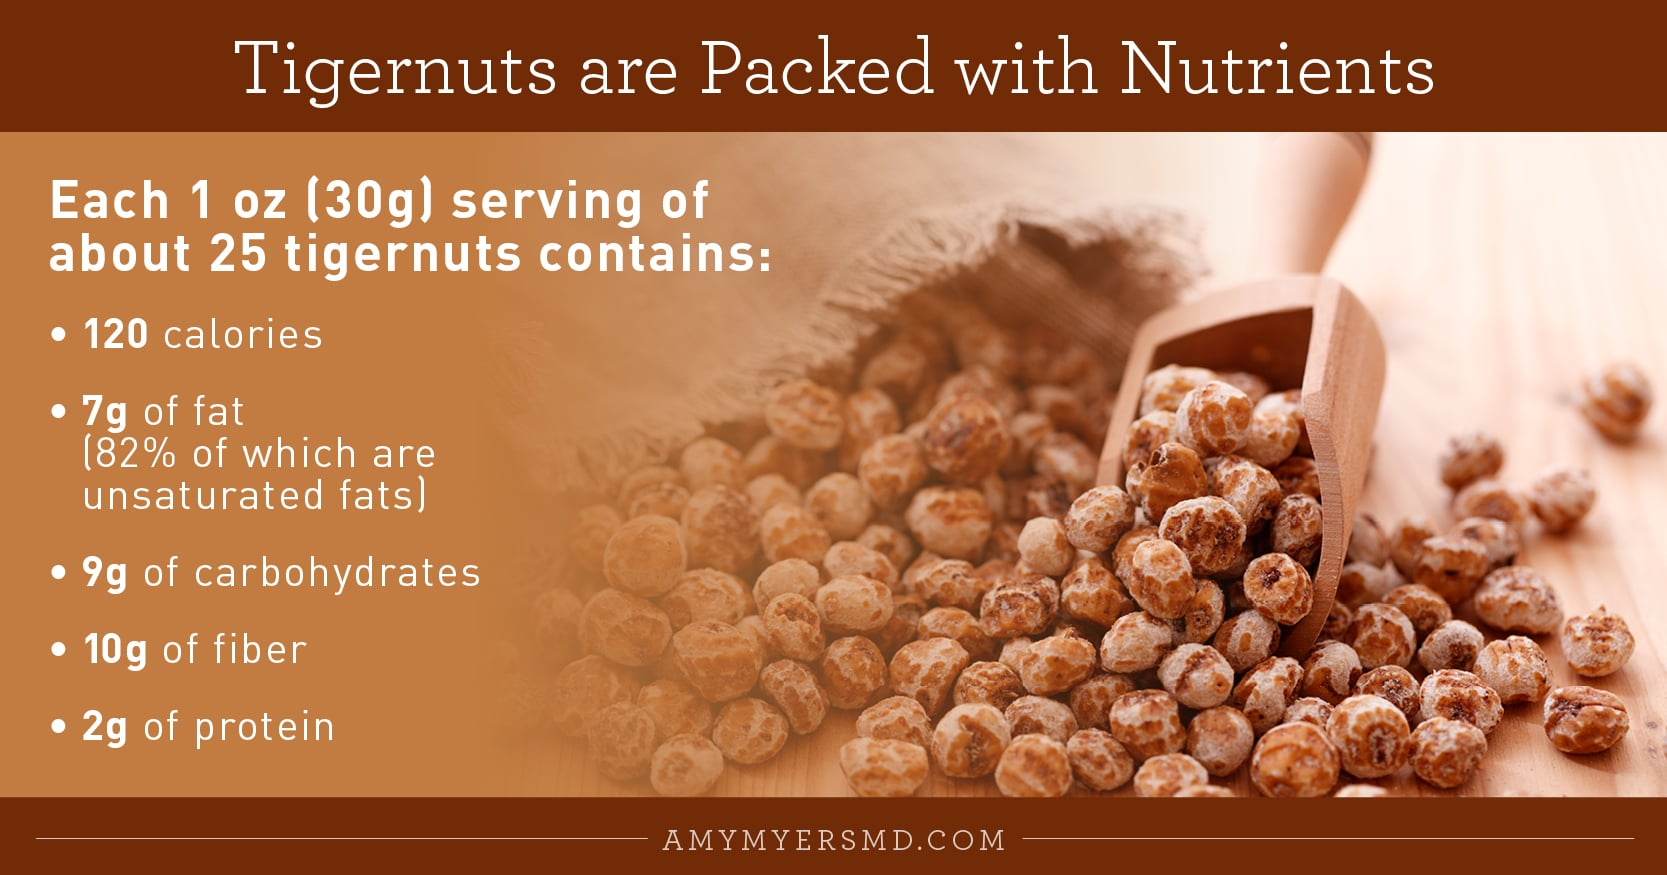 Tigernuts are Packed with Nutrients - Infographic - Amy Myers MD